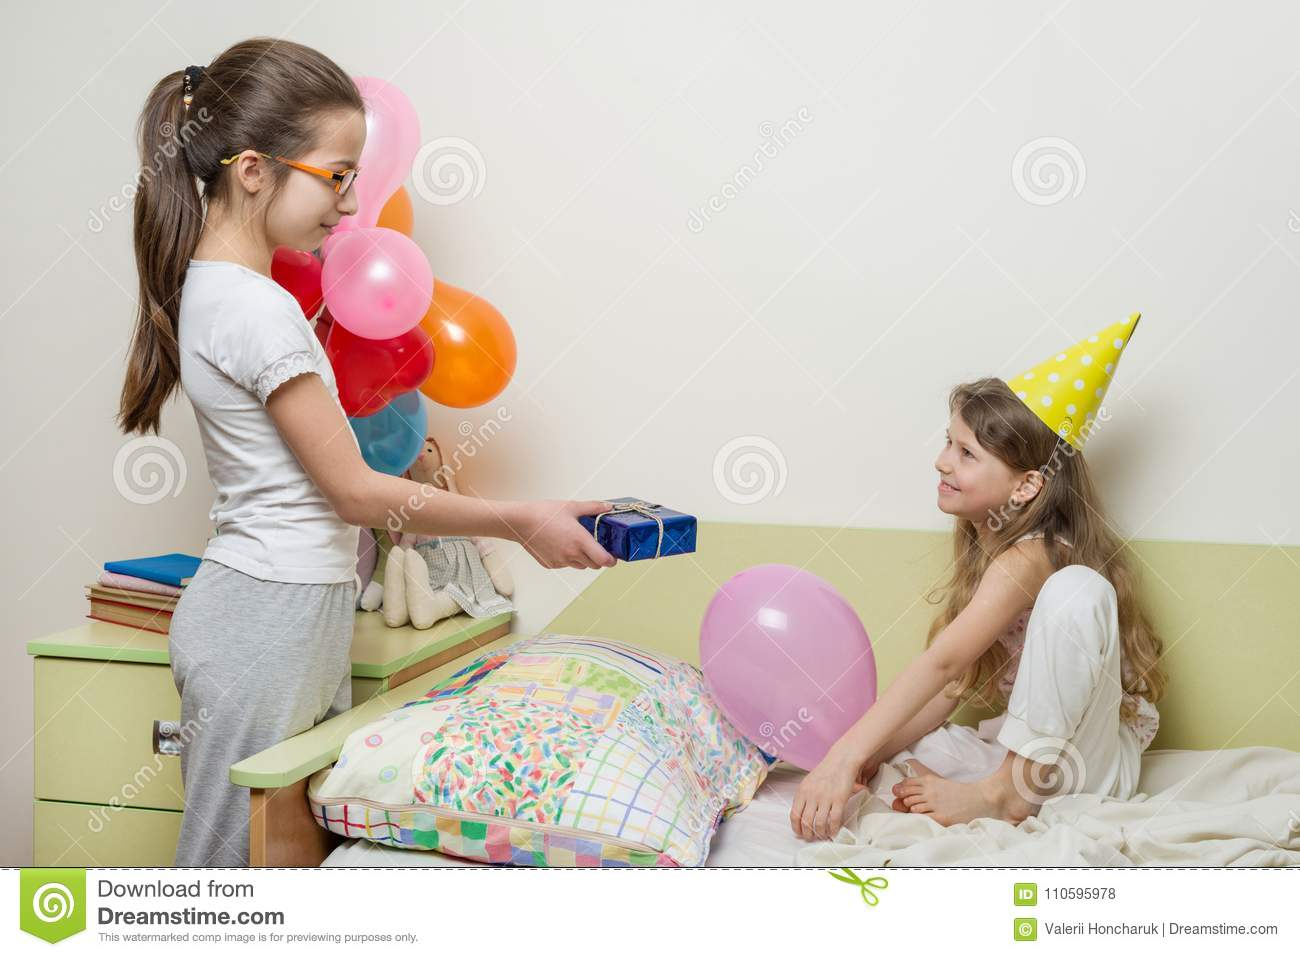 Birthday Morning Older Sister Giving Surprise Gift To Her Cute Little Children At Home In Bed